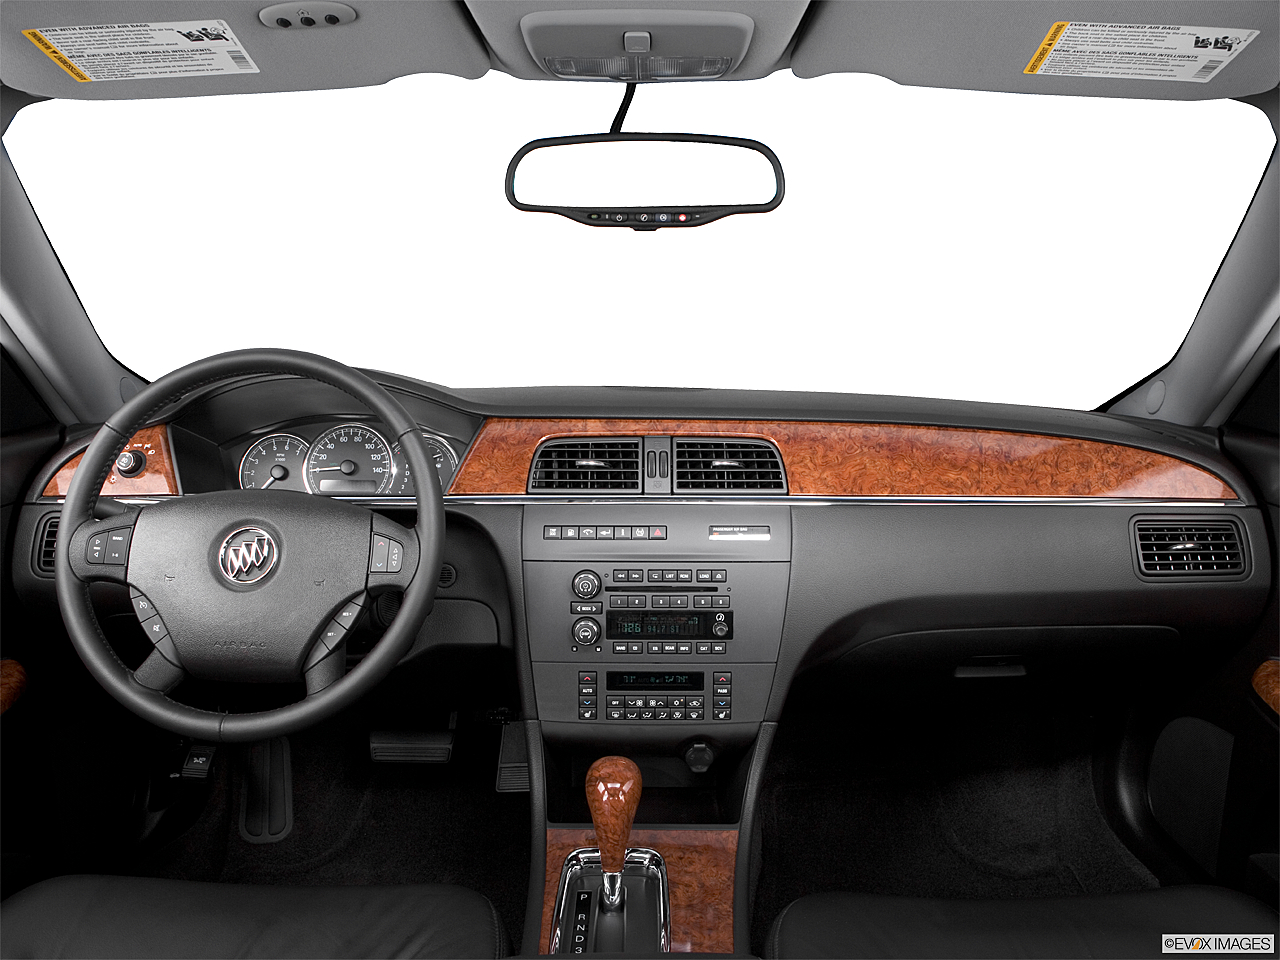 2006 Buick LaCrosse CXS, centered wide dash shot